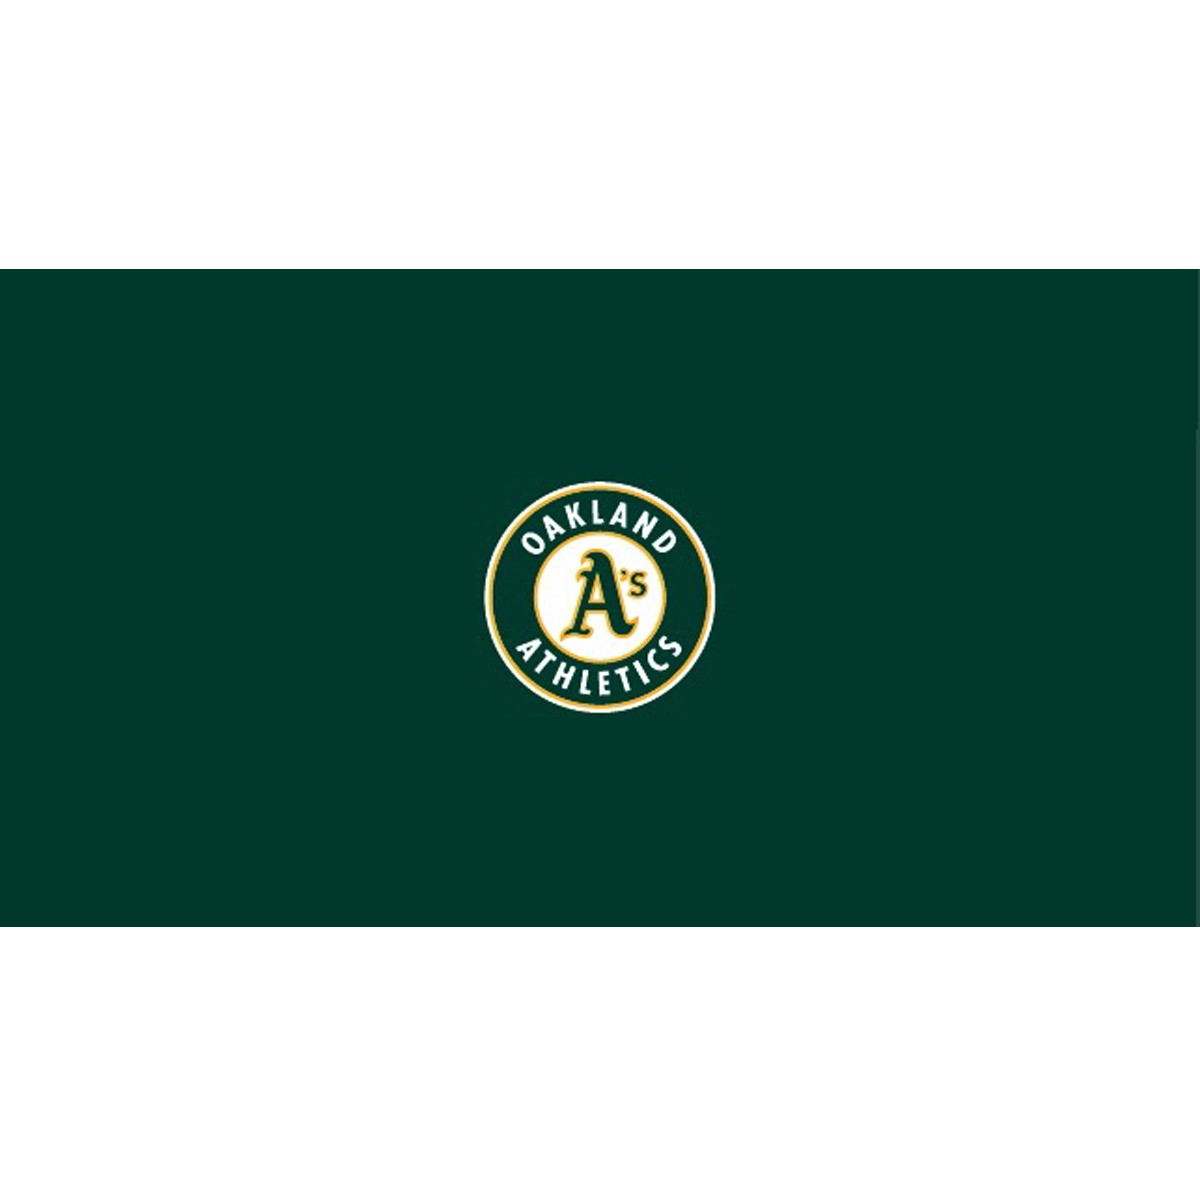 OAKLAND ATHLETICS 8-FOOT BILLIARD CLOTH